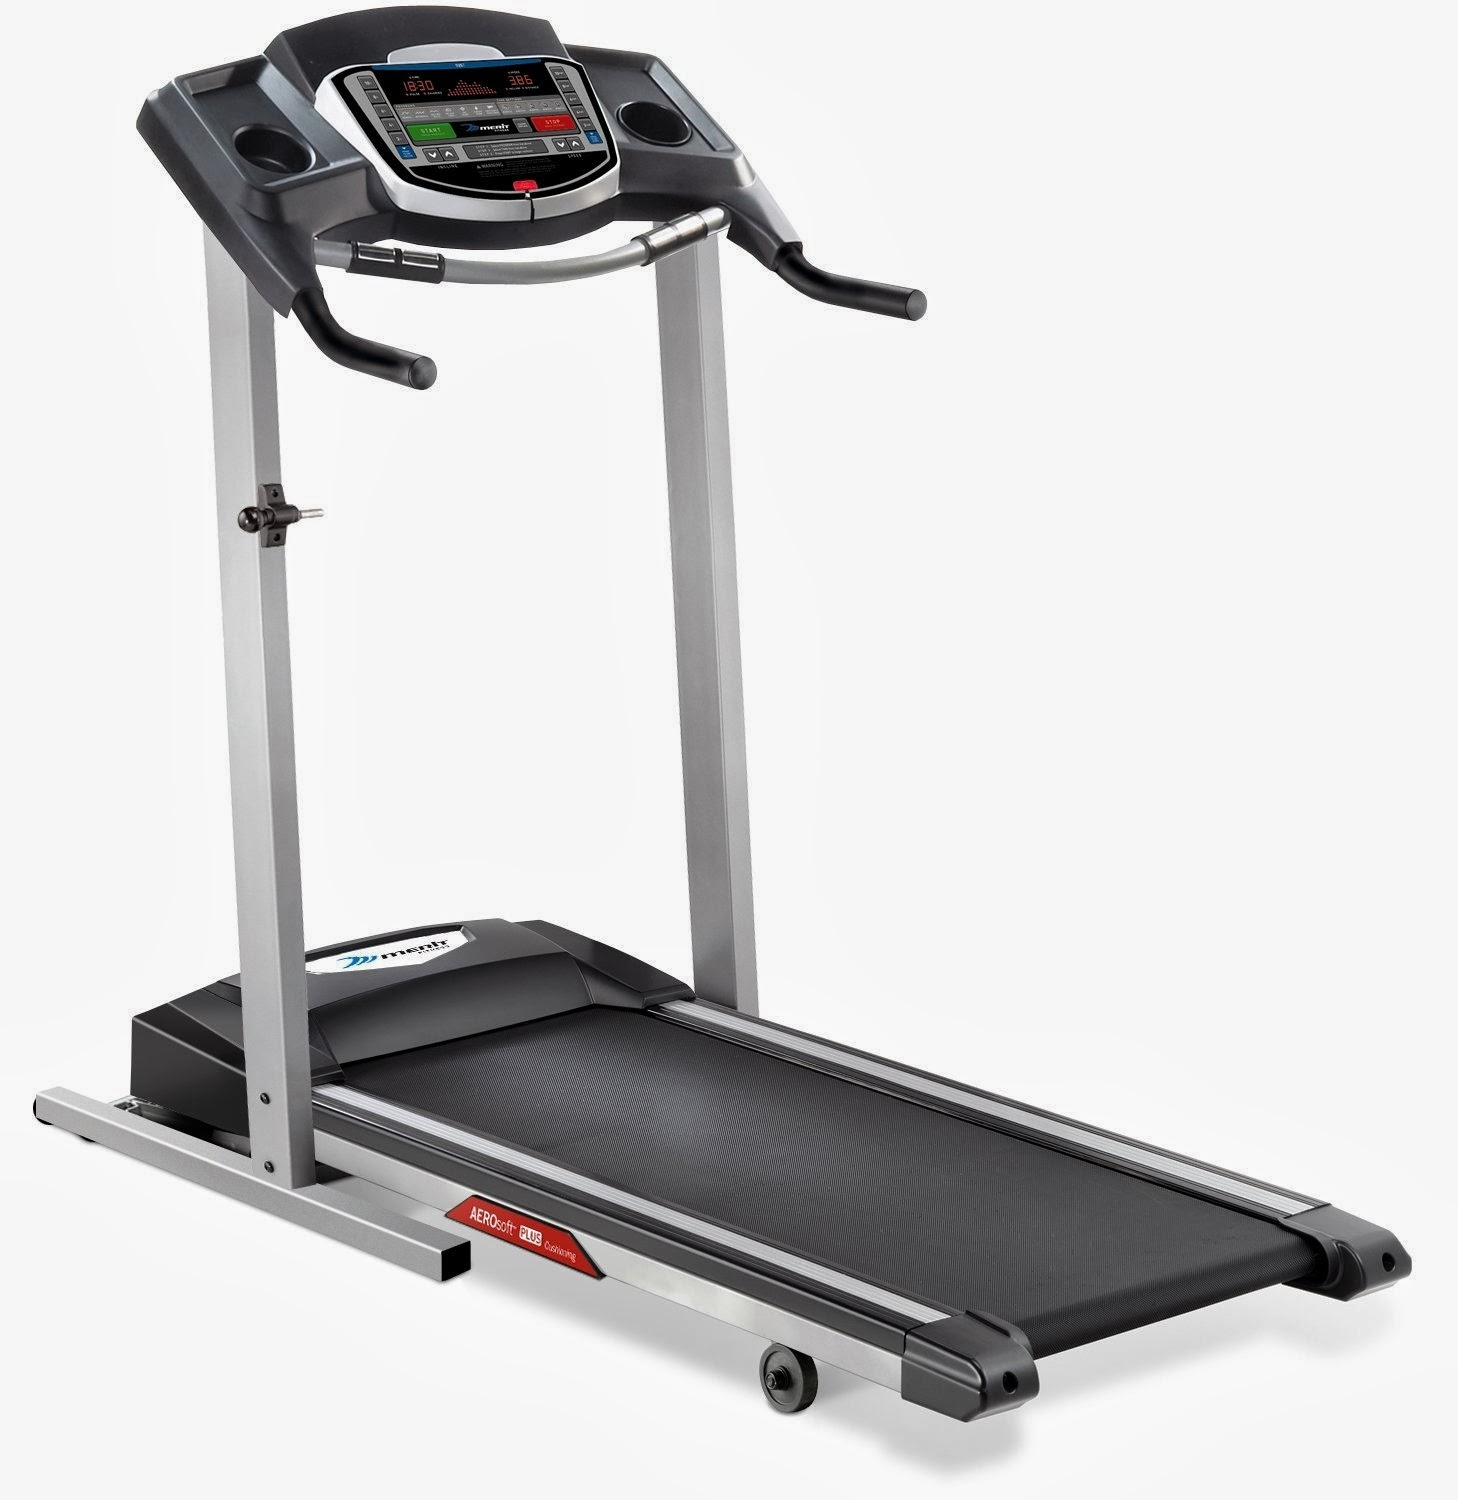 Life Fitness Treadmill Replace Emergency Stop Switch: Health And Fitness Den: Merit Fitness 715T Treadmill